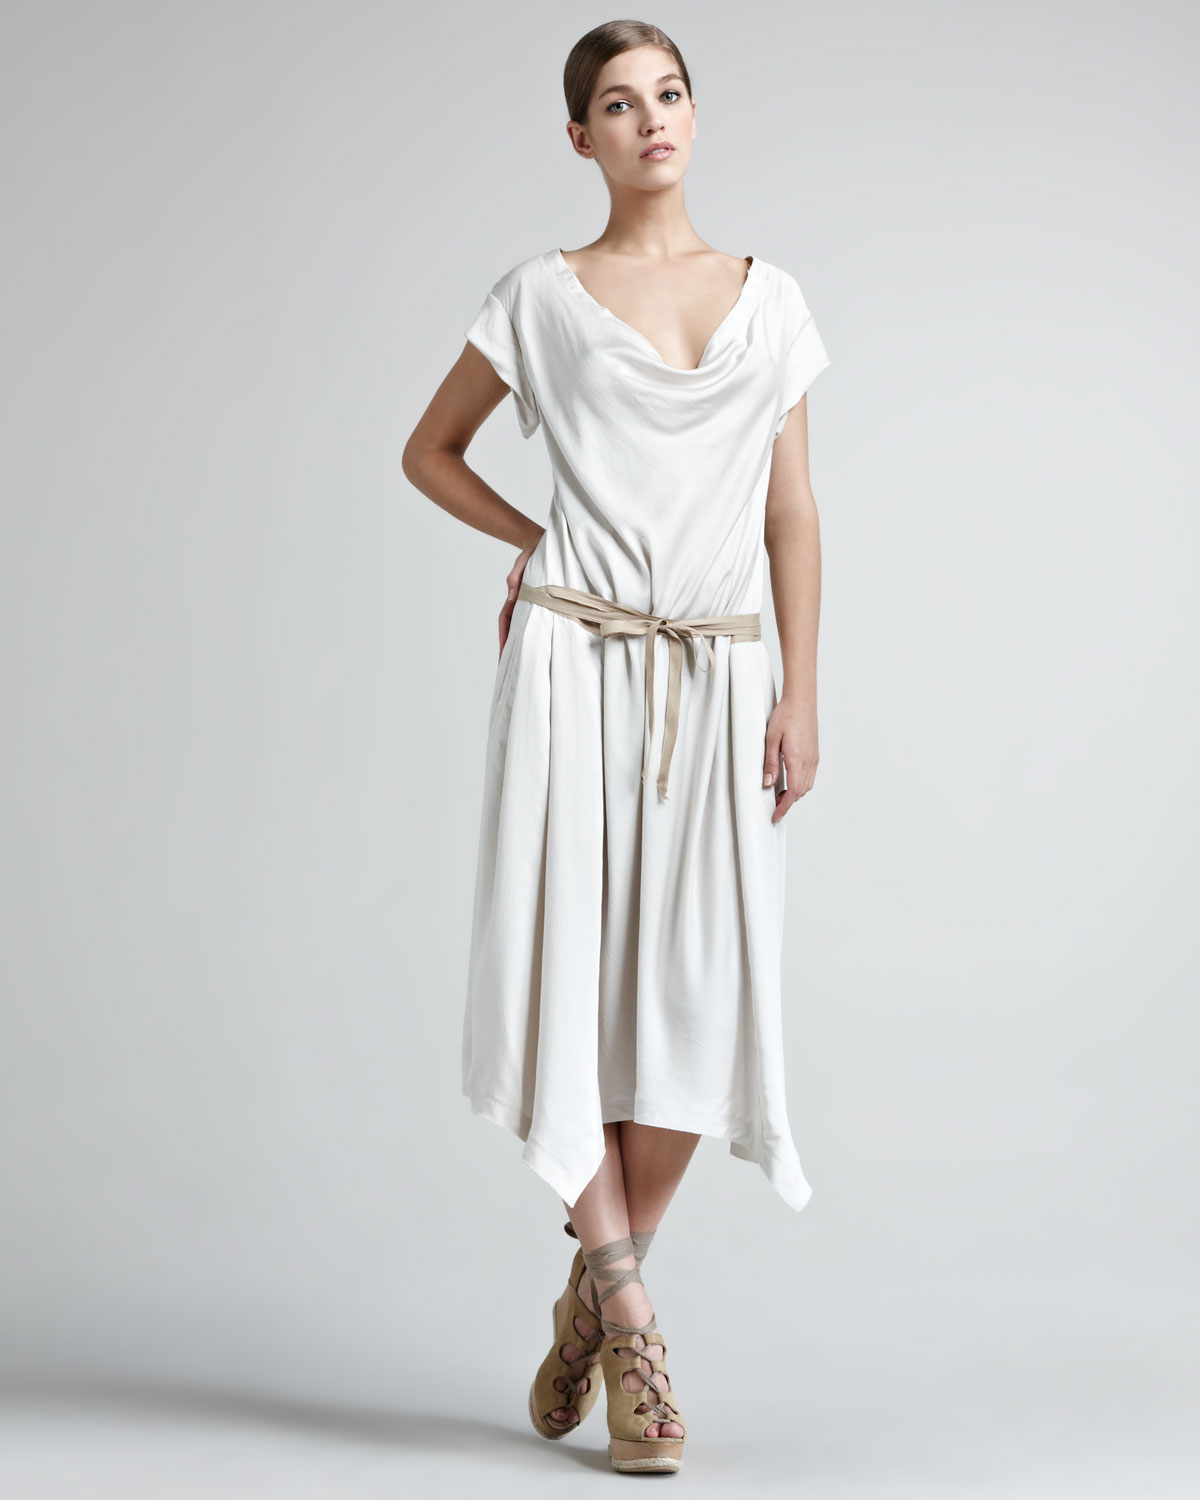 Donna karan Sport Satin Draped Dress in White | Lyst